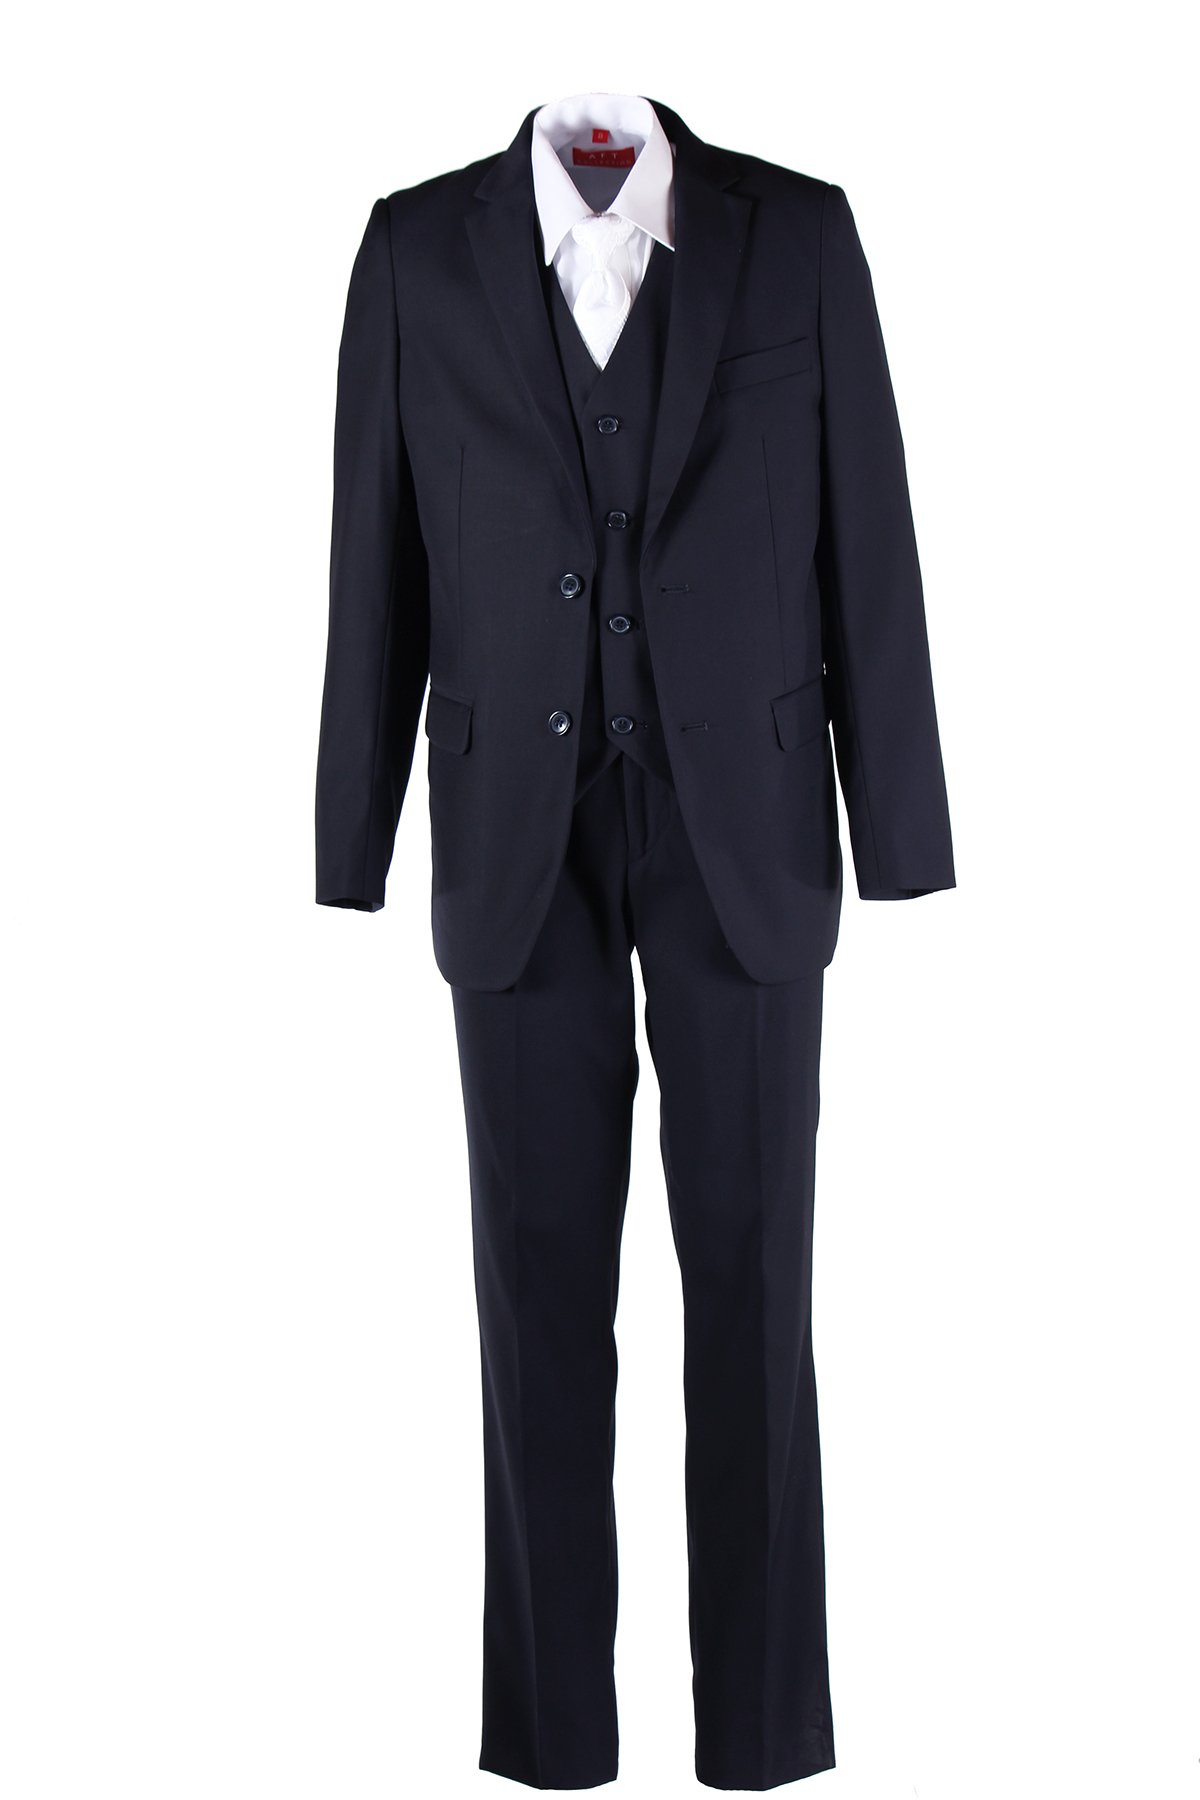 Boys Navy Blue Slim Fit Communion Suit with Vest & White Clergy Tie (8 Boys)